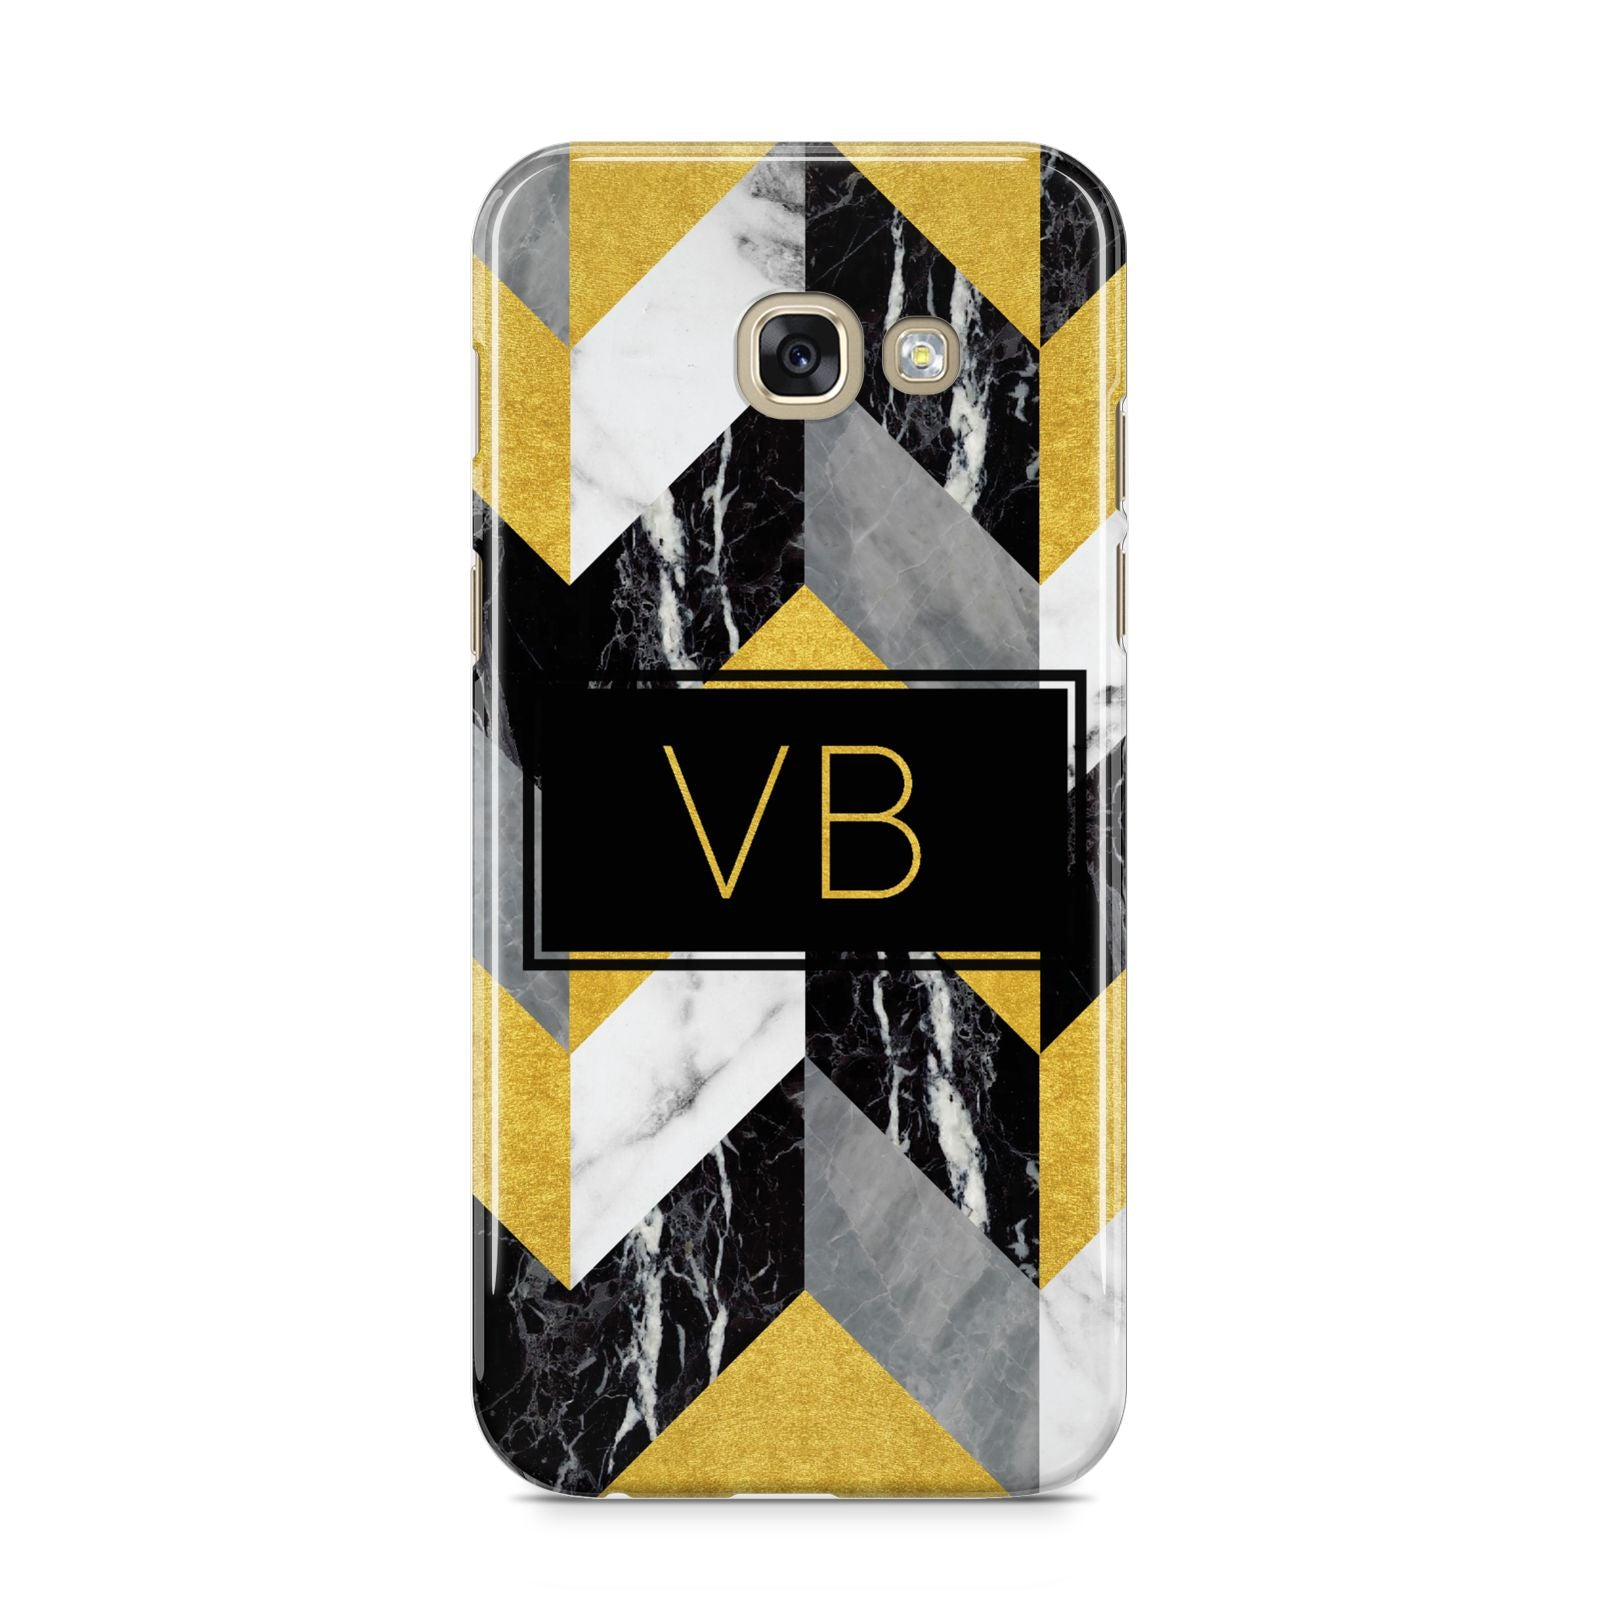 Personalised Marble Effect Initials Samsung Galaxy A5 2017 Case on gold phone